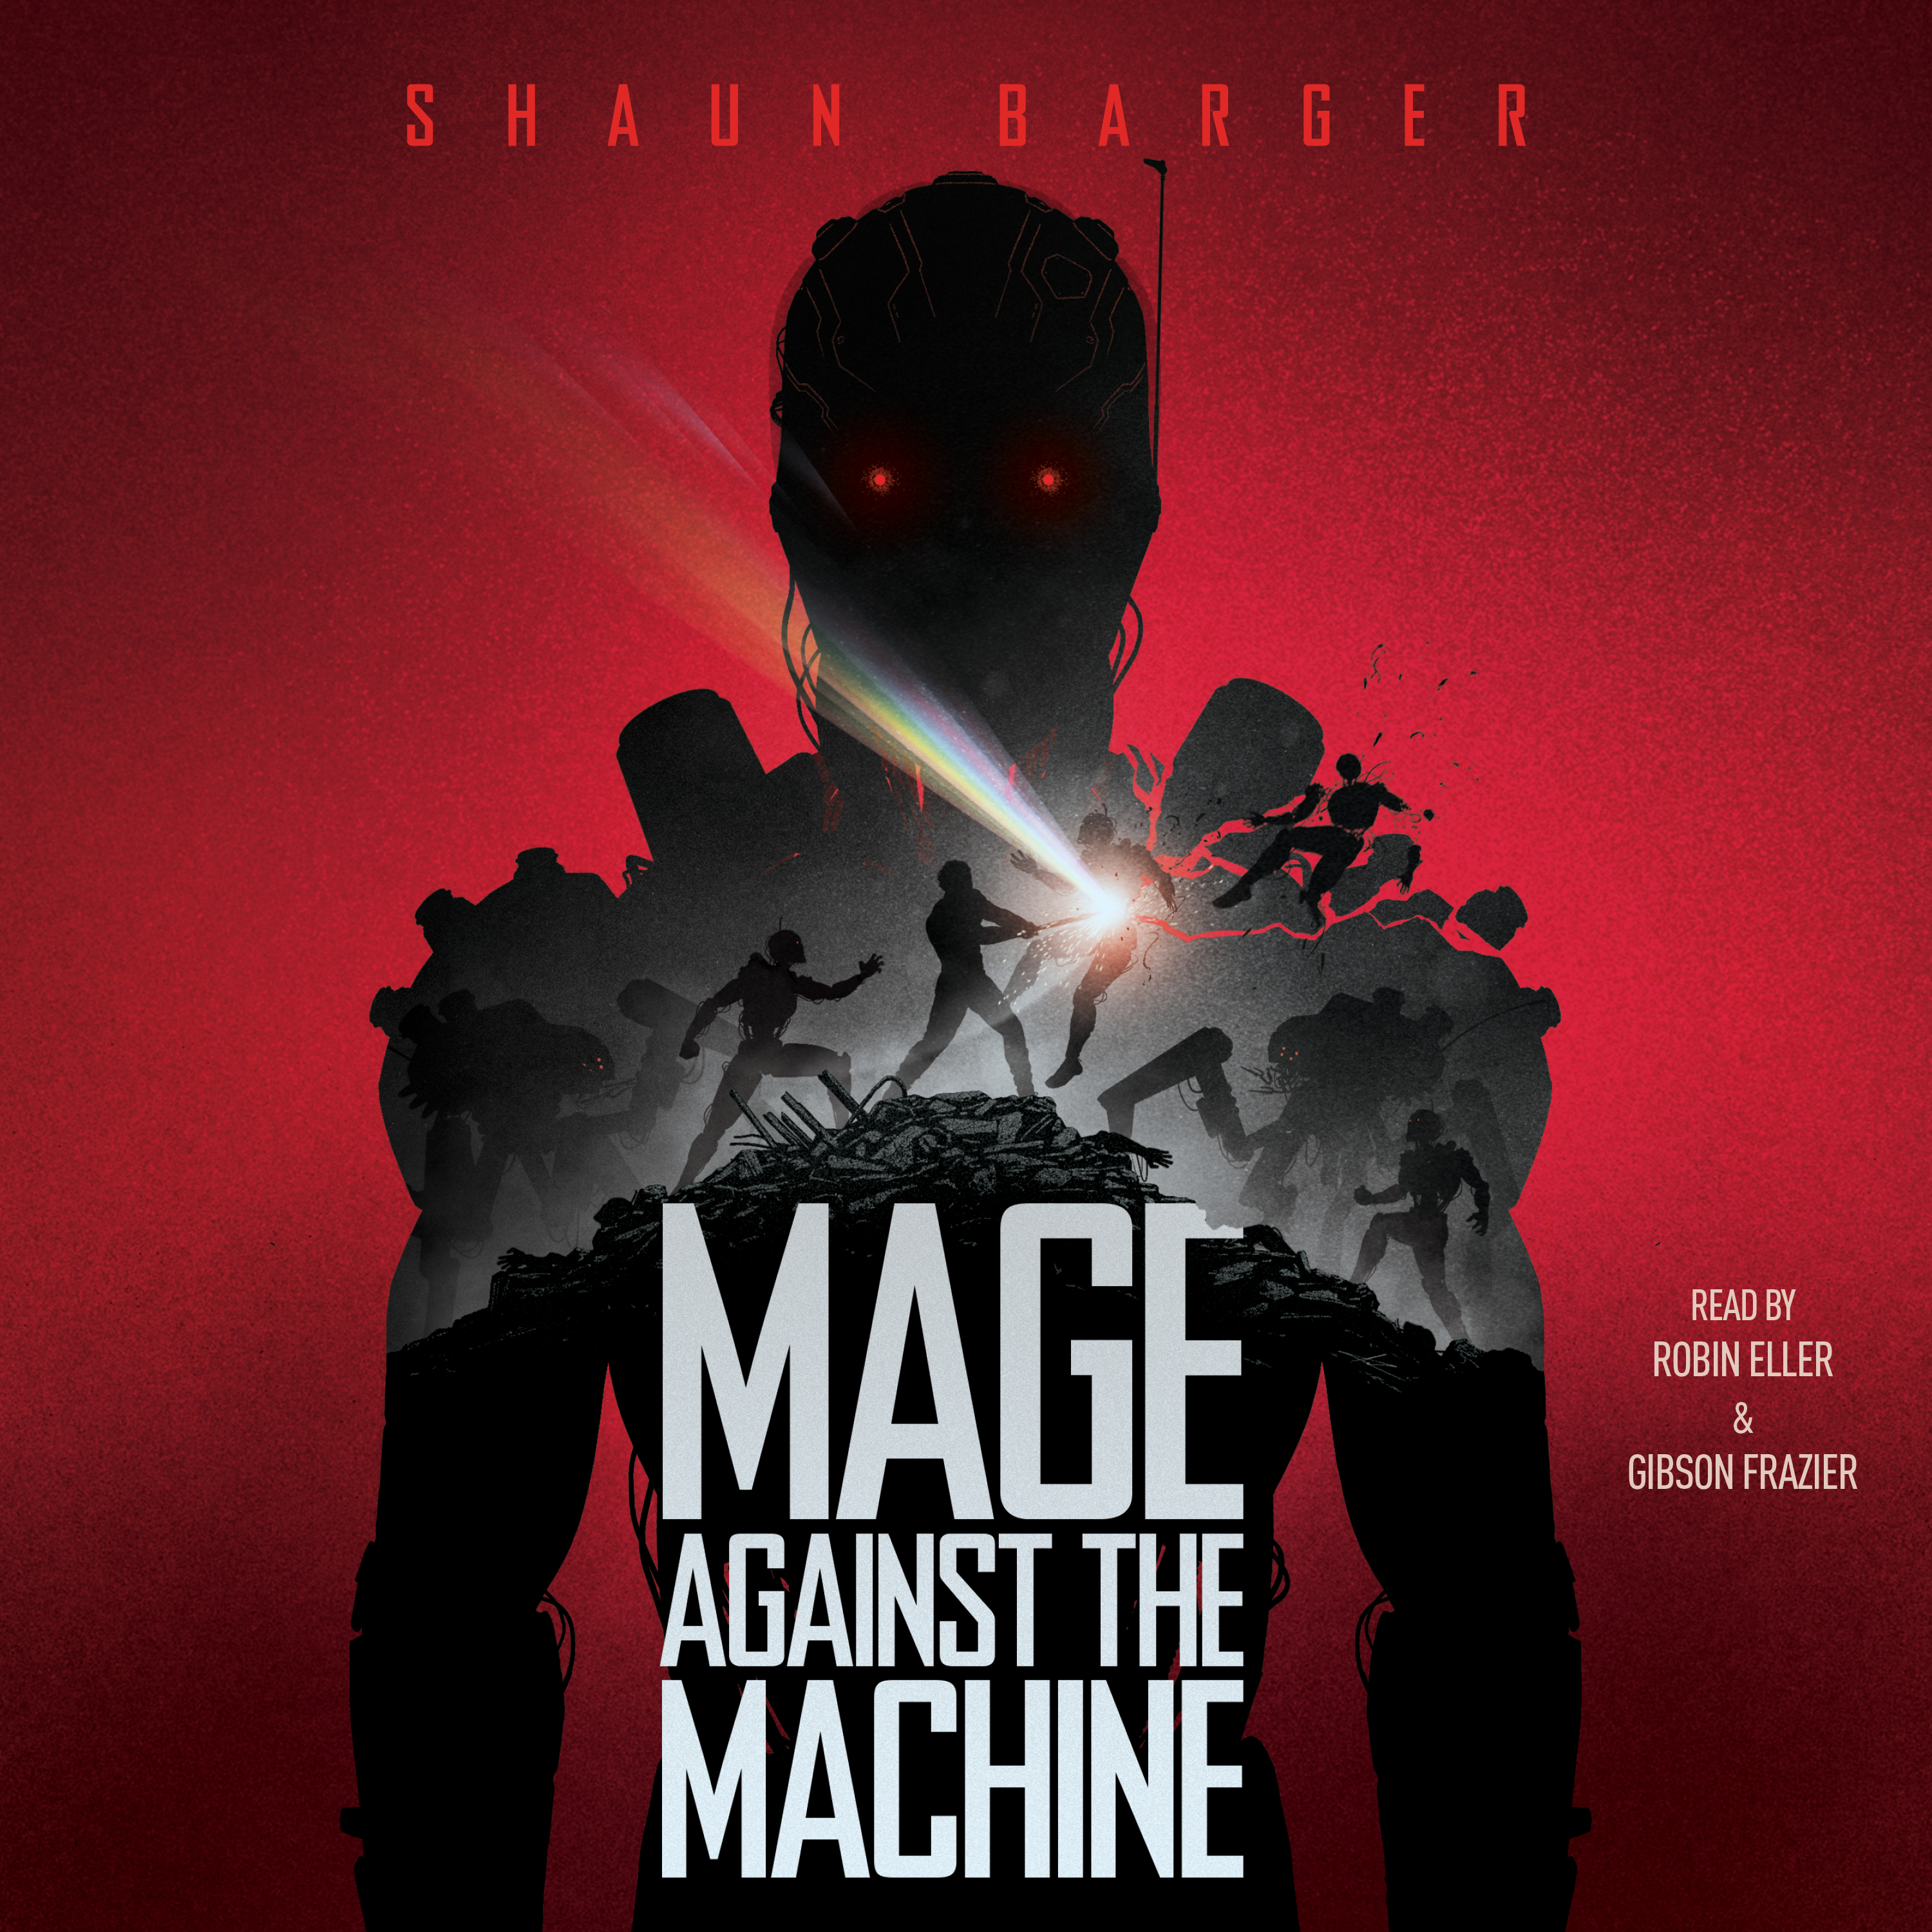 Mage against the machine 9781508277798 hr